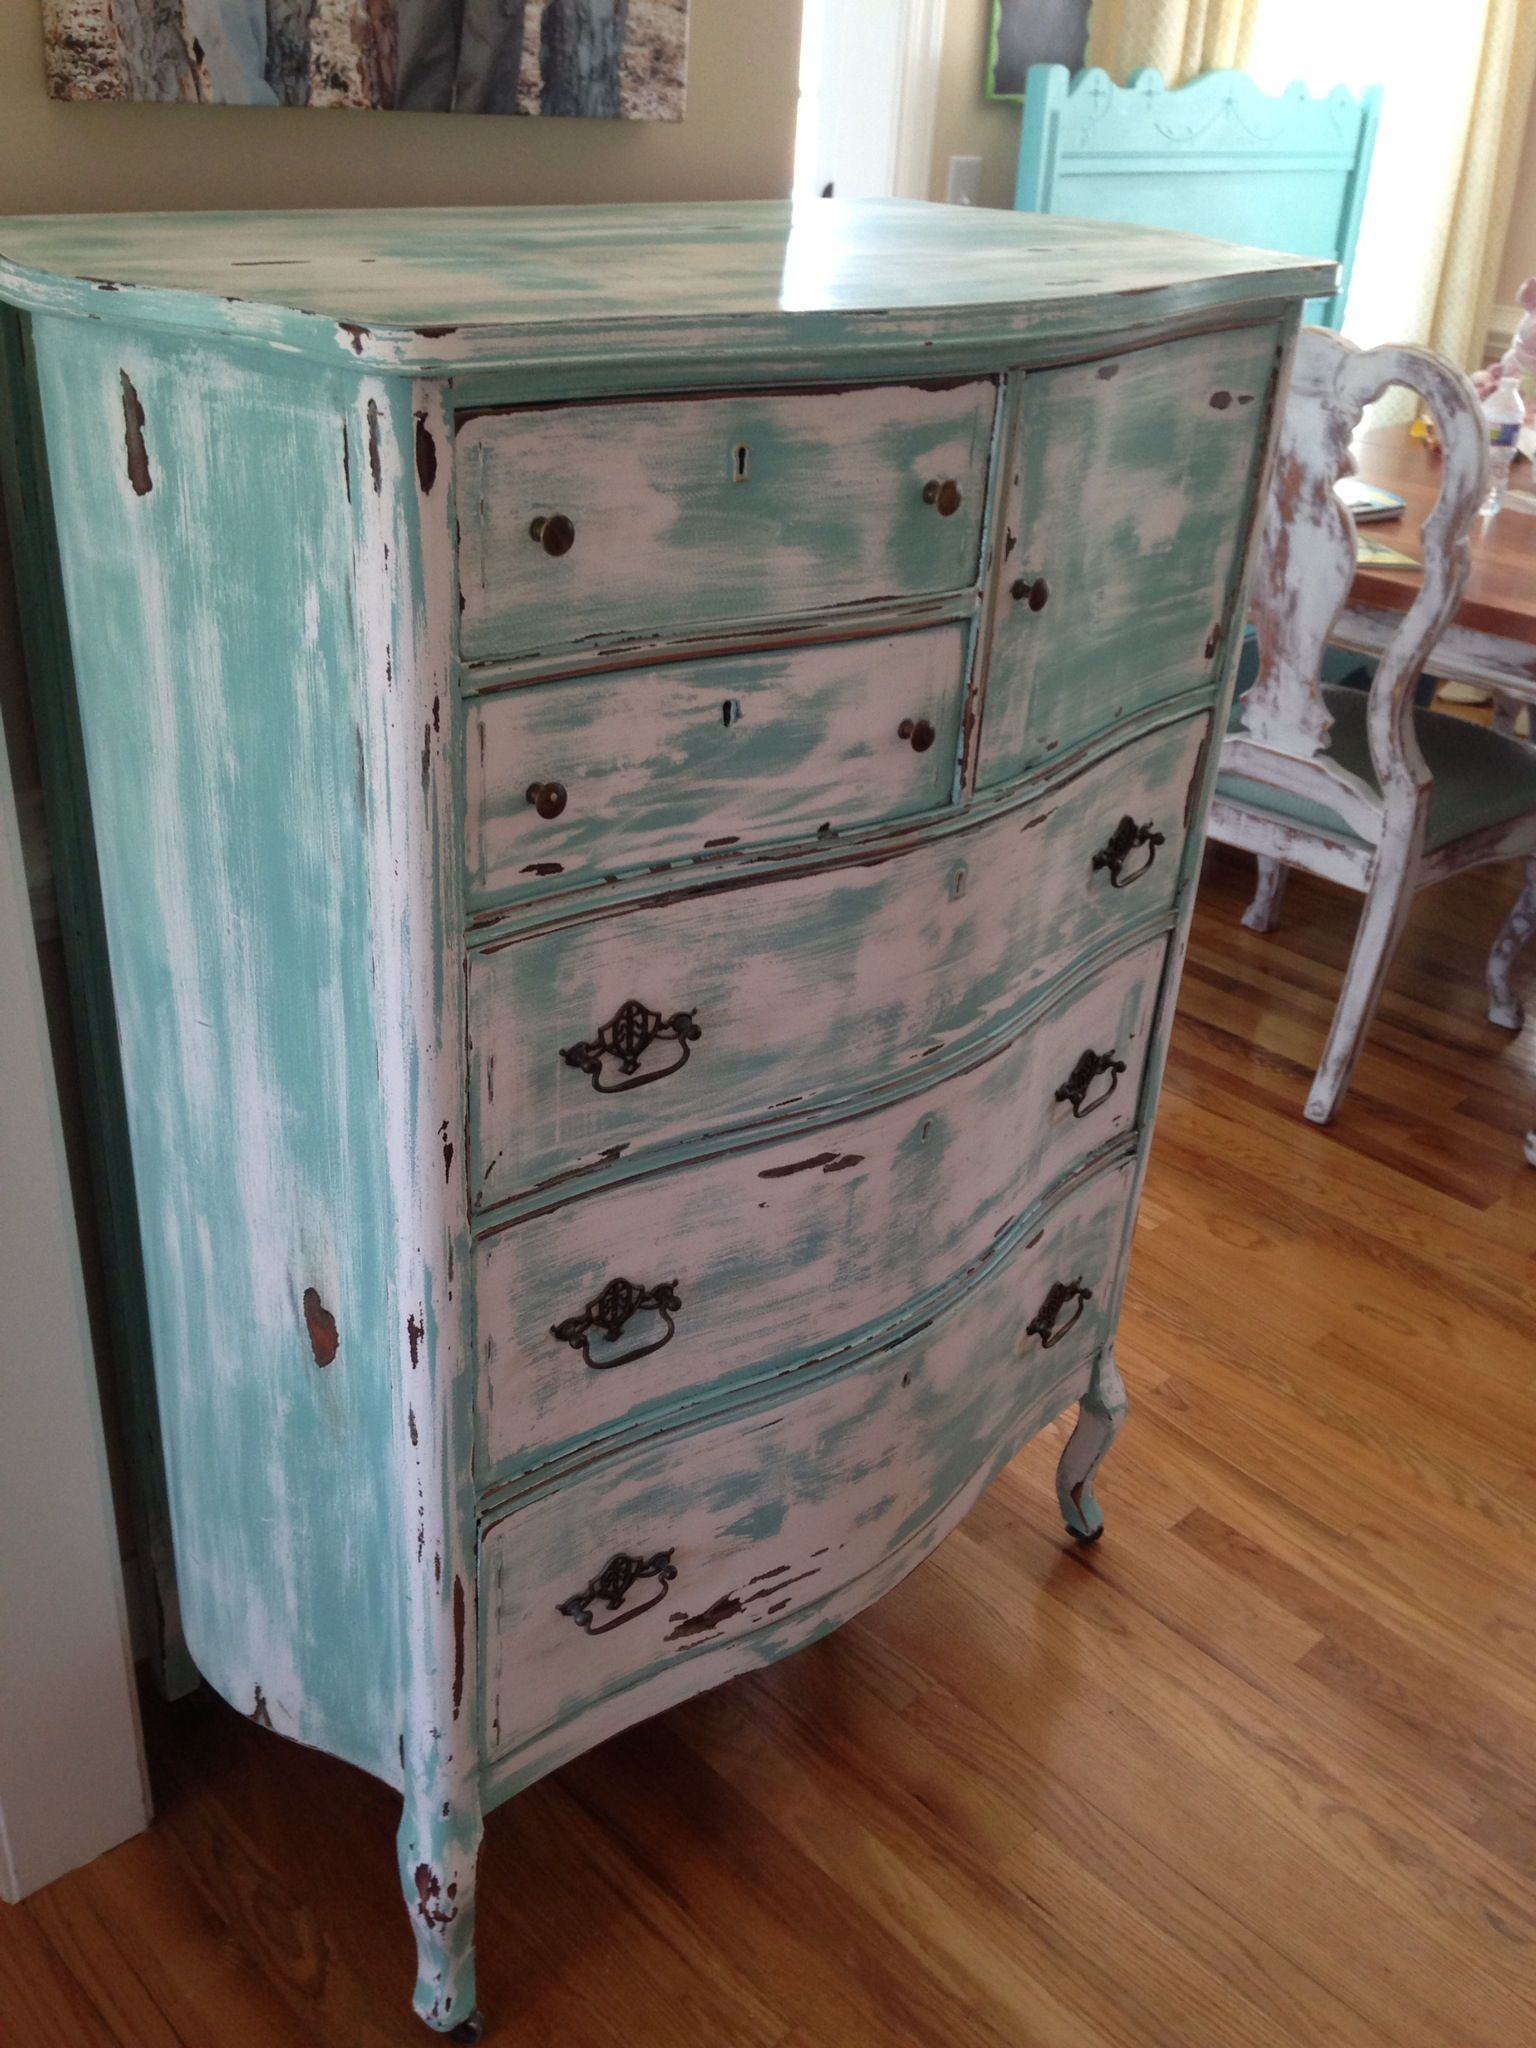 distressed antique furniture. Antique Chest Of Drawers .turquoise, White, Distressed And Aged To Perfection! Furniture O